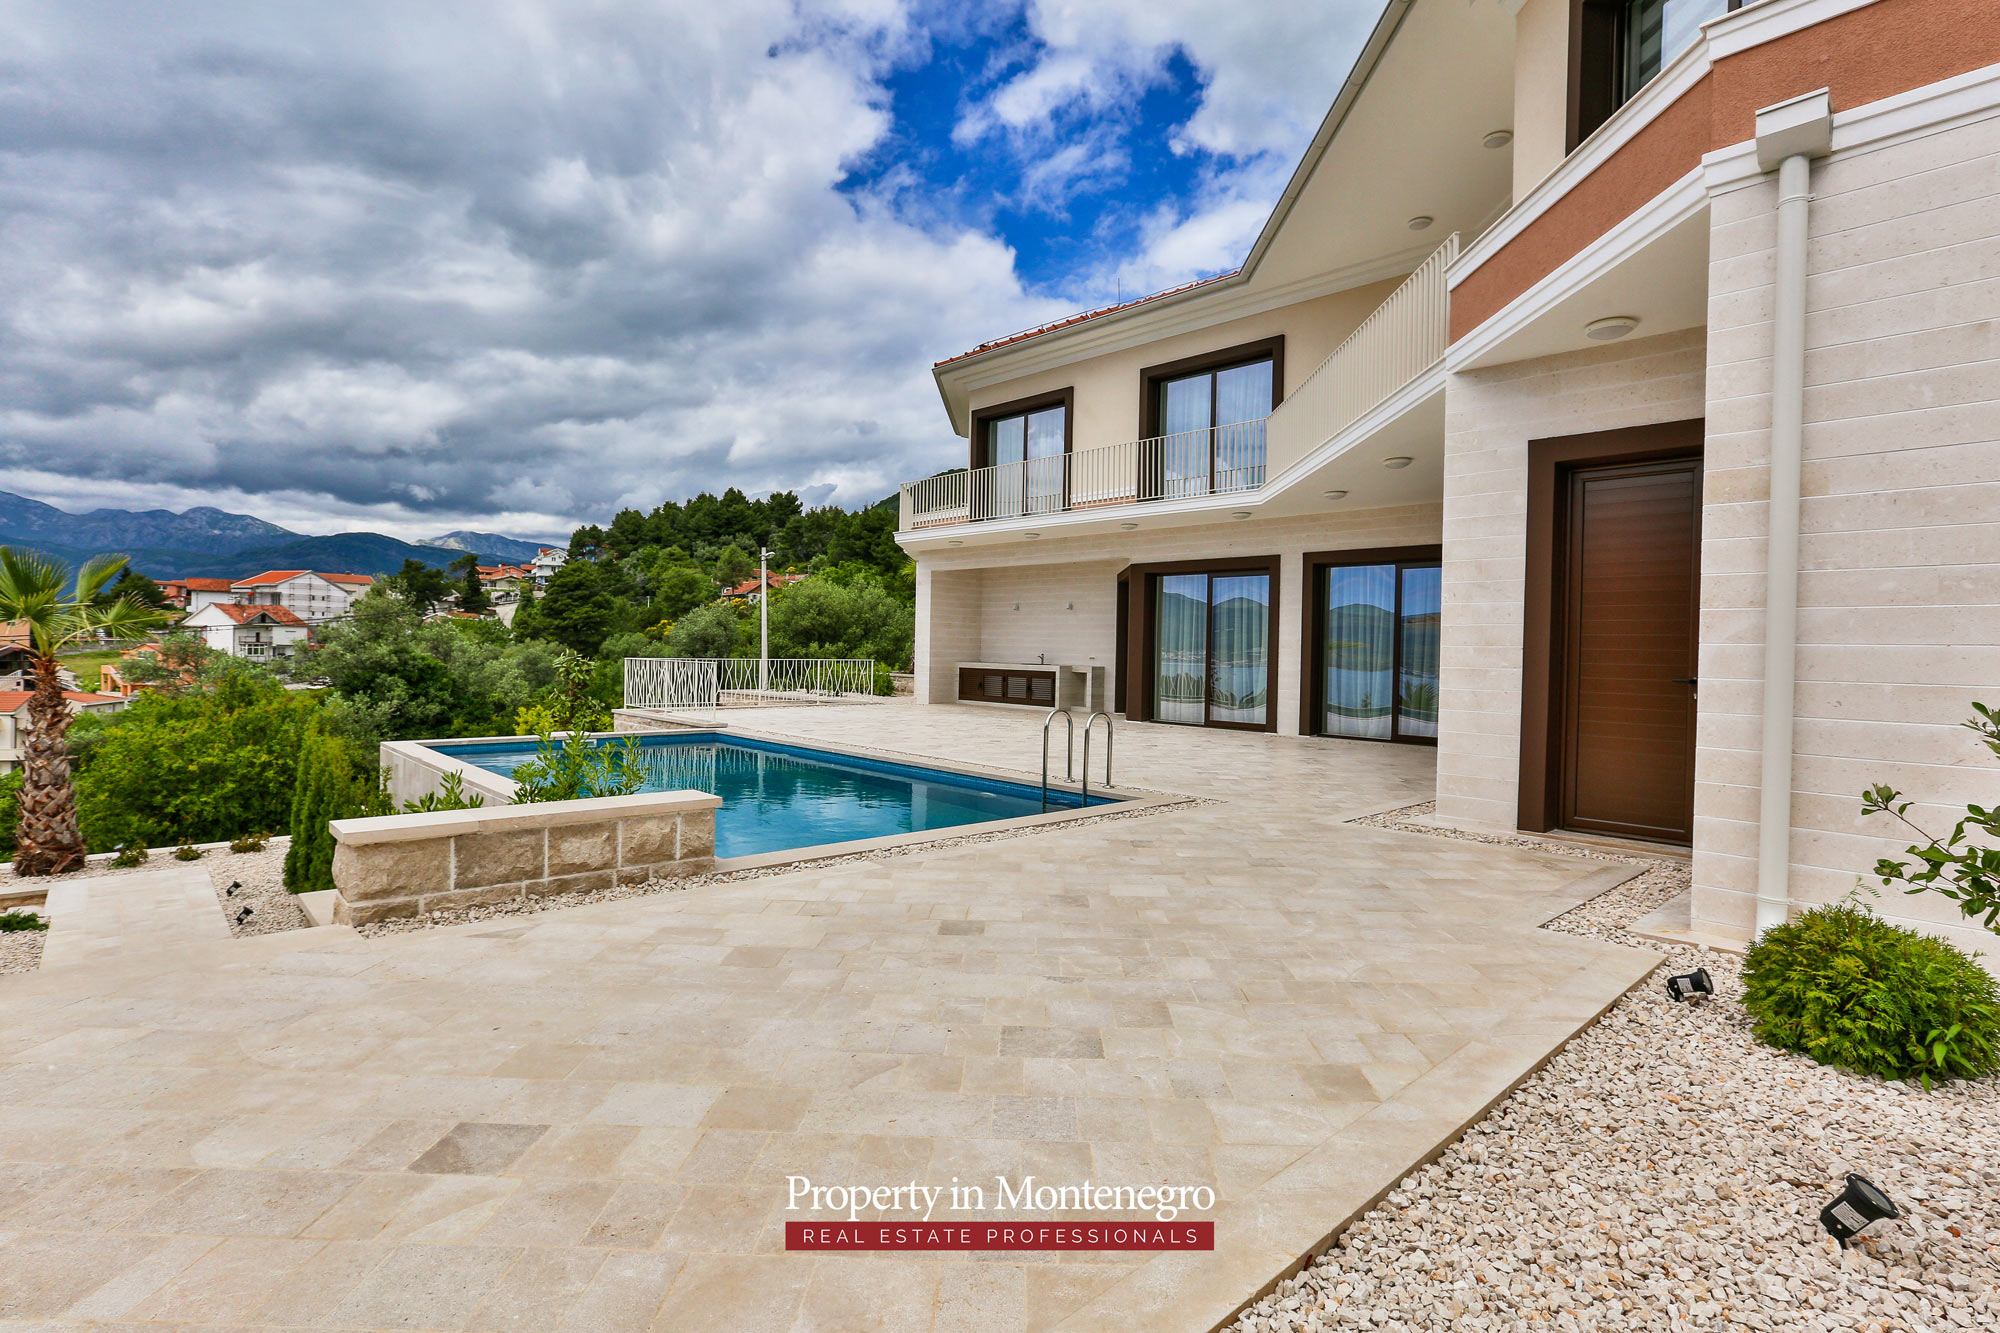 Luxury-villa-with-sea-view-for-sale-in-Tivat (2).jpg